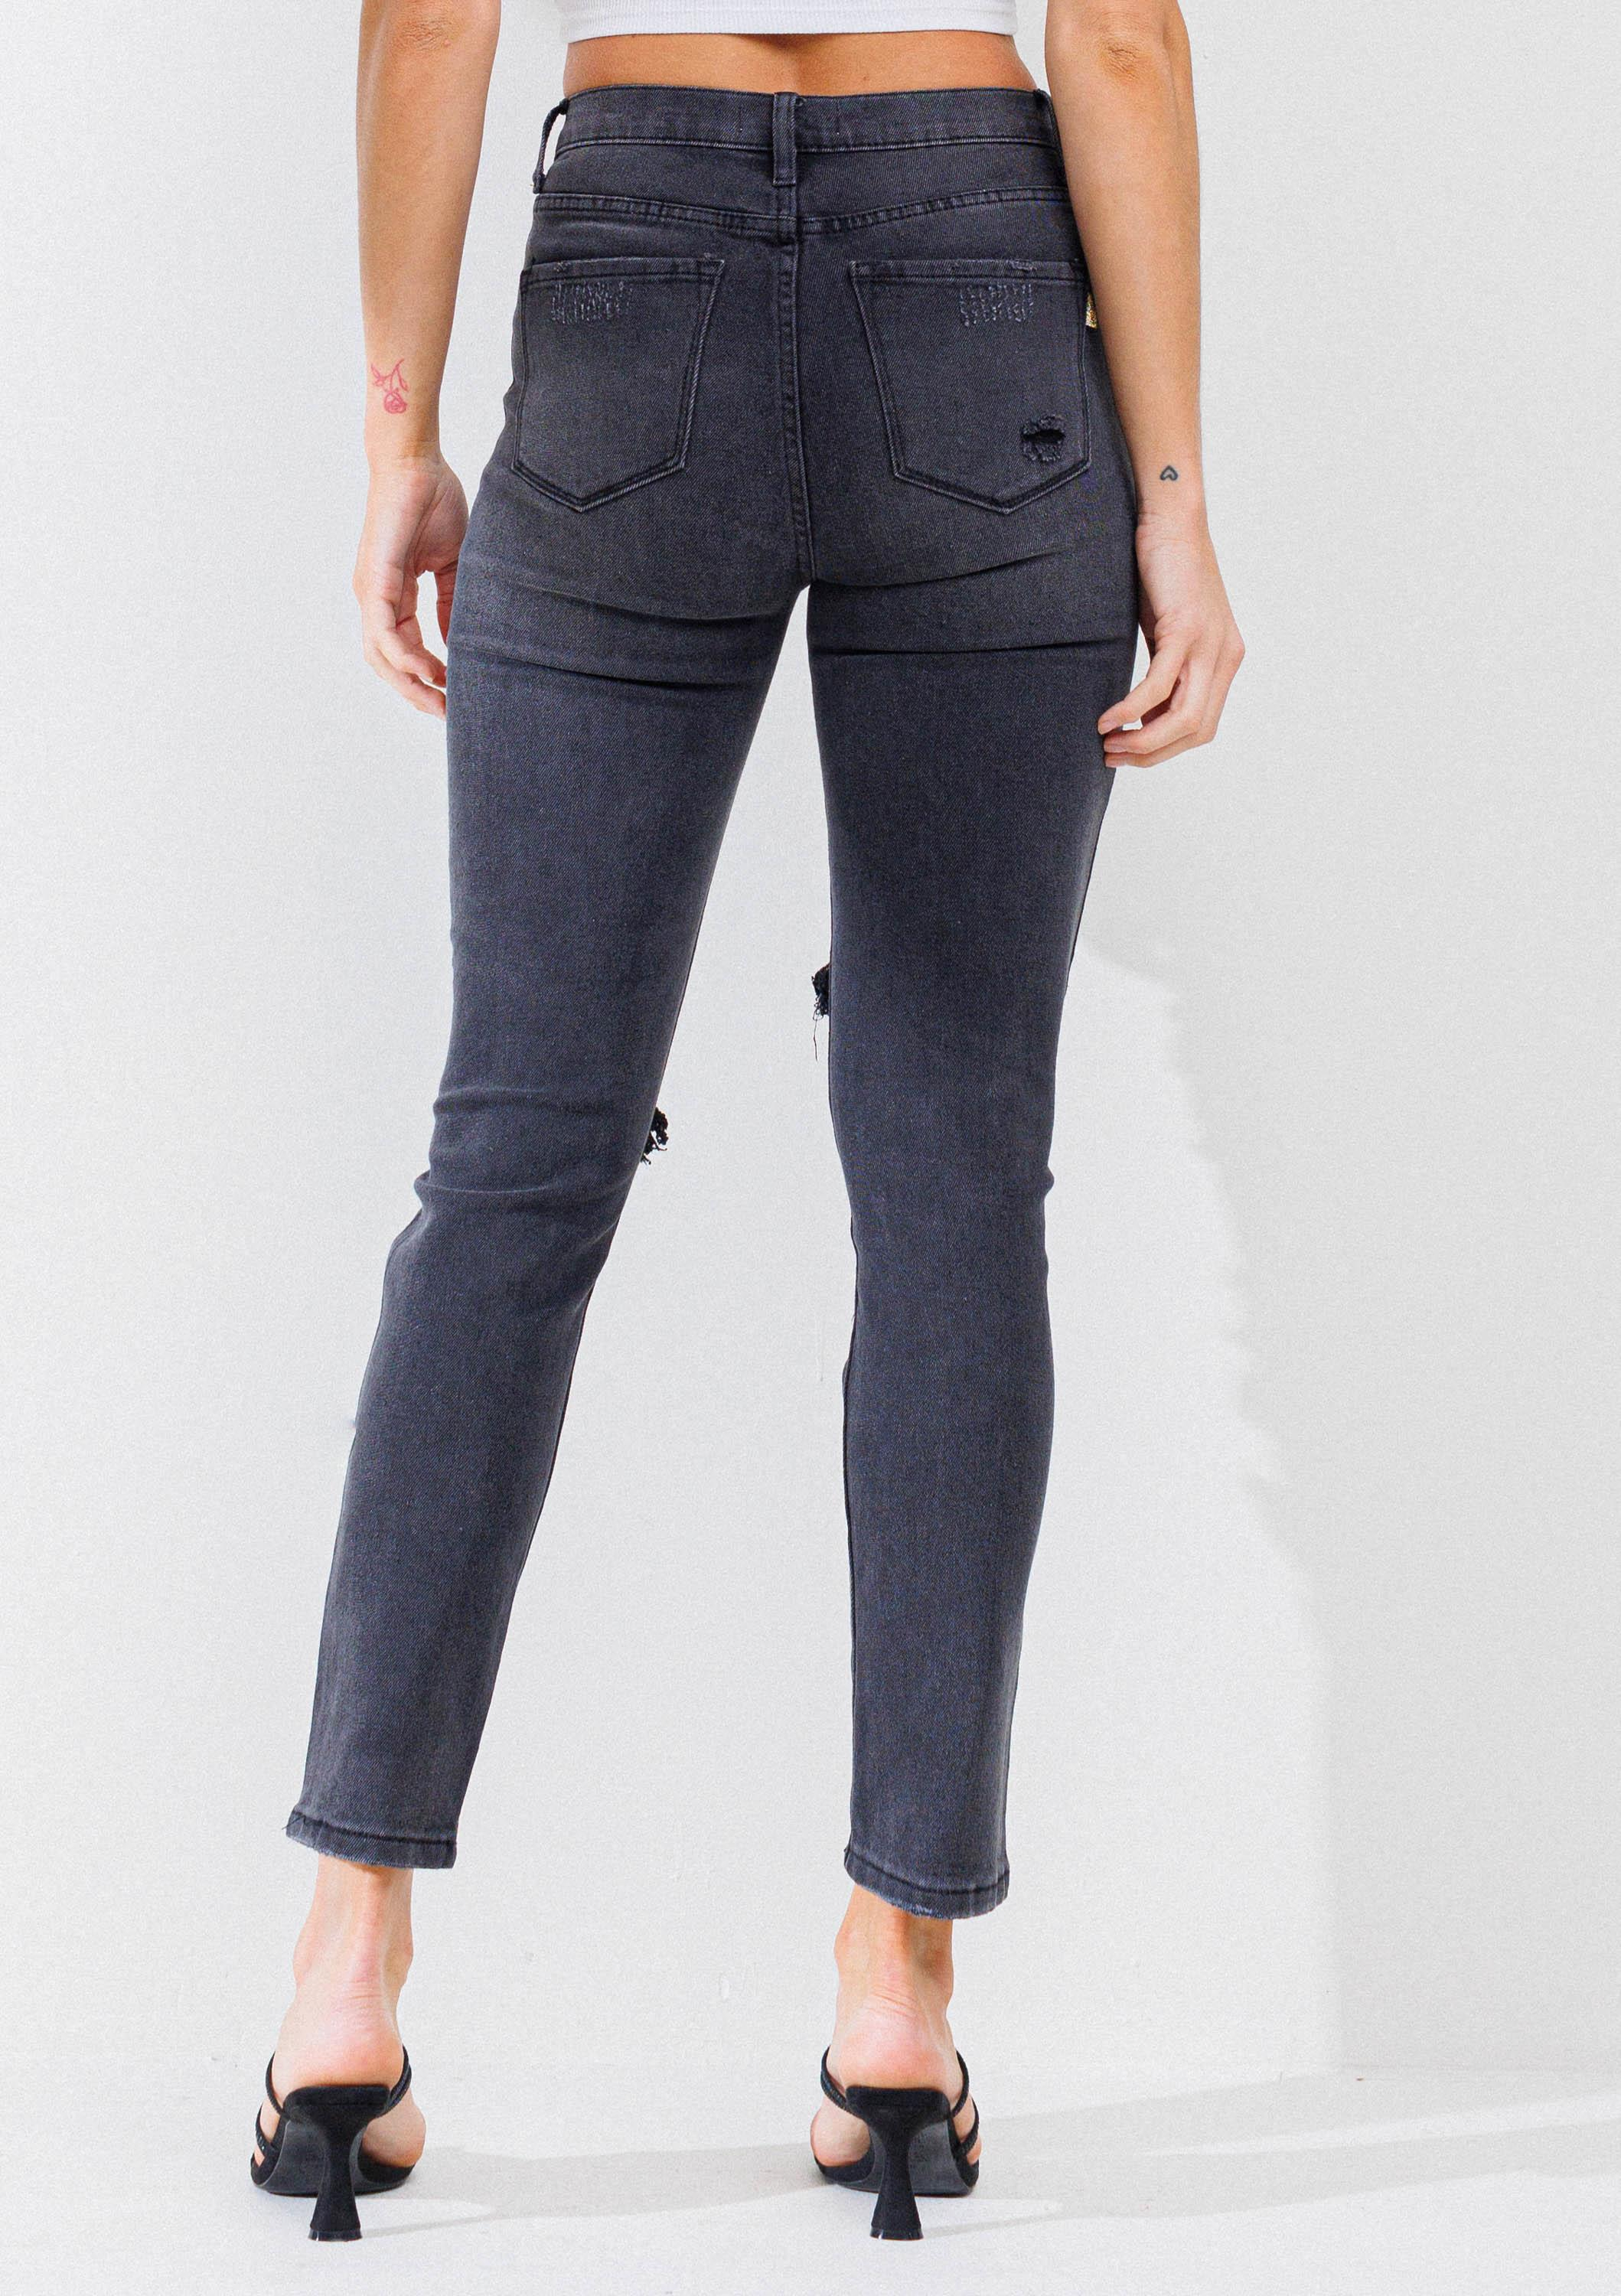 Sydney Ankle Jeans